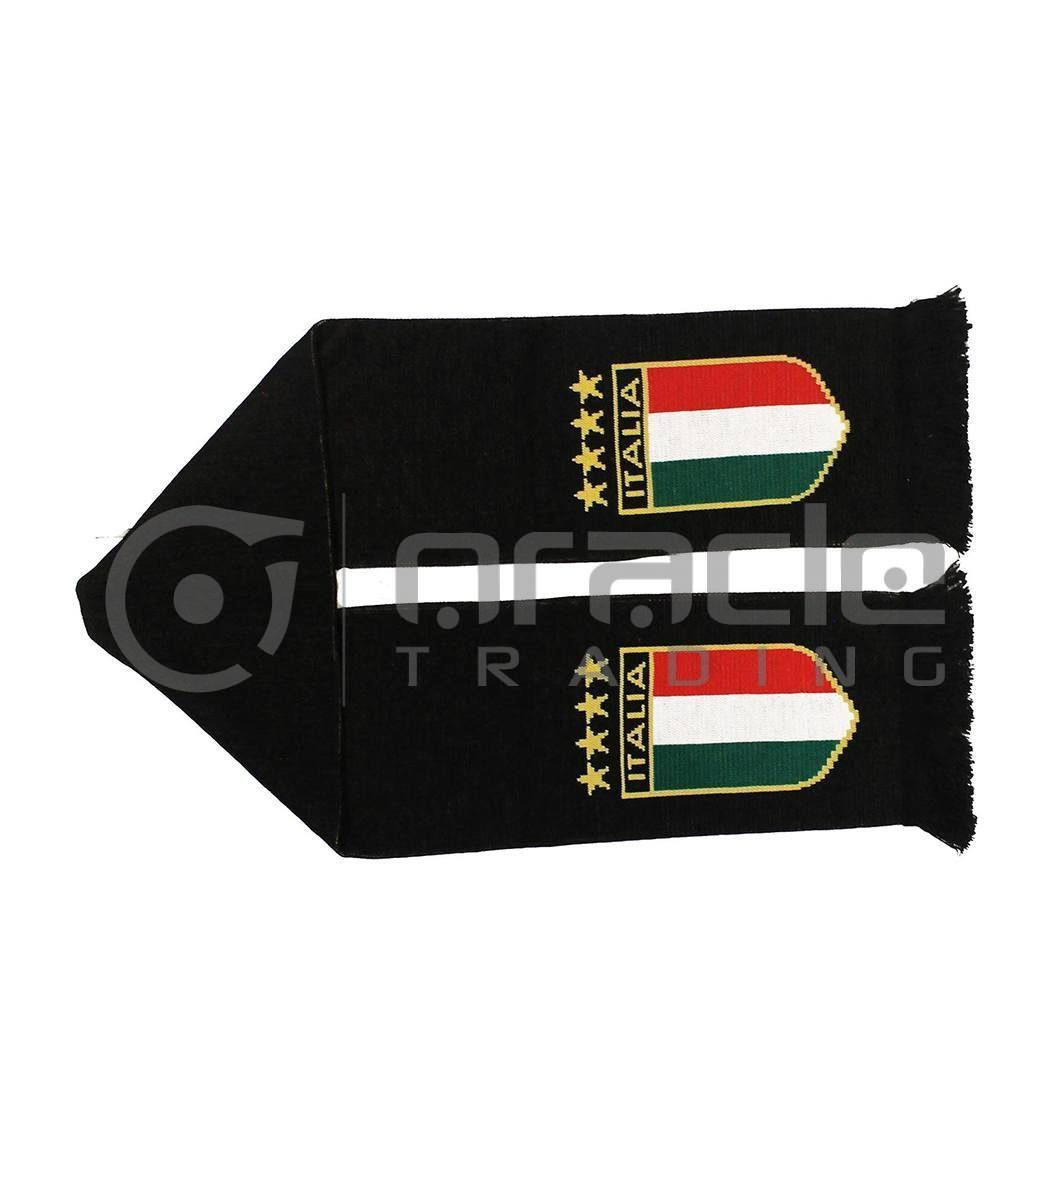 Italia Black Edition UK-Made Scarf